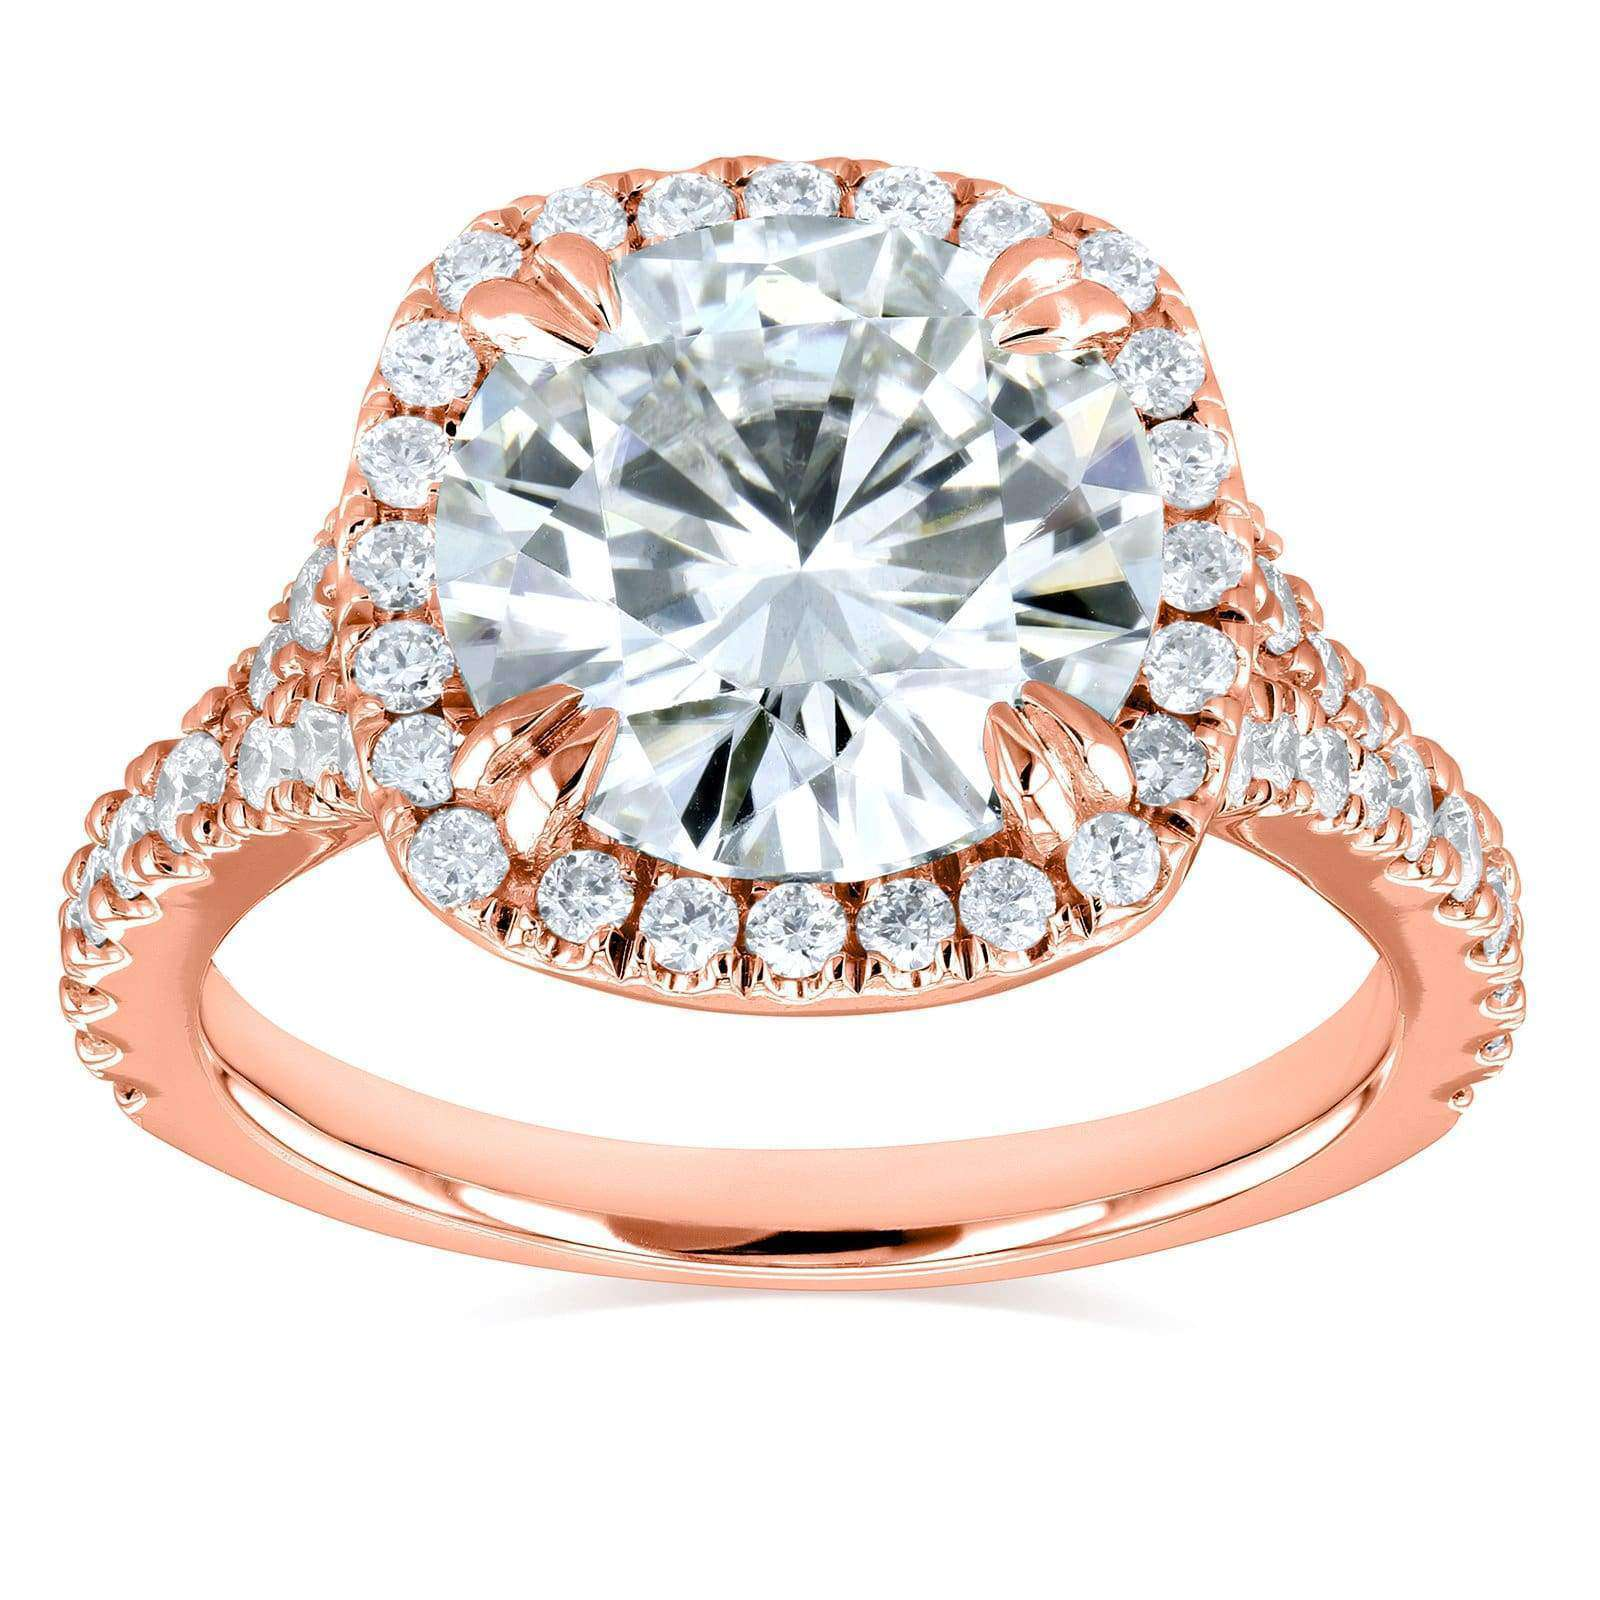 Coupons Round H-I Moissanite and Diamond Halo Engagement Ring 3 5/8 CTW 14k Rose Gold - 7